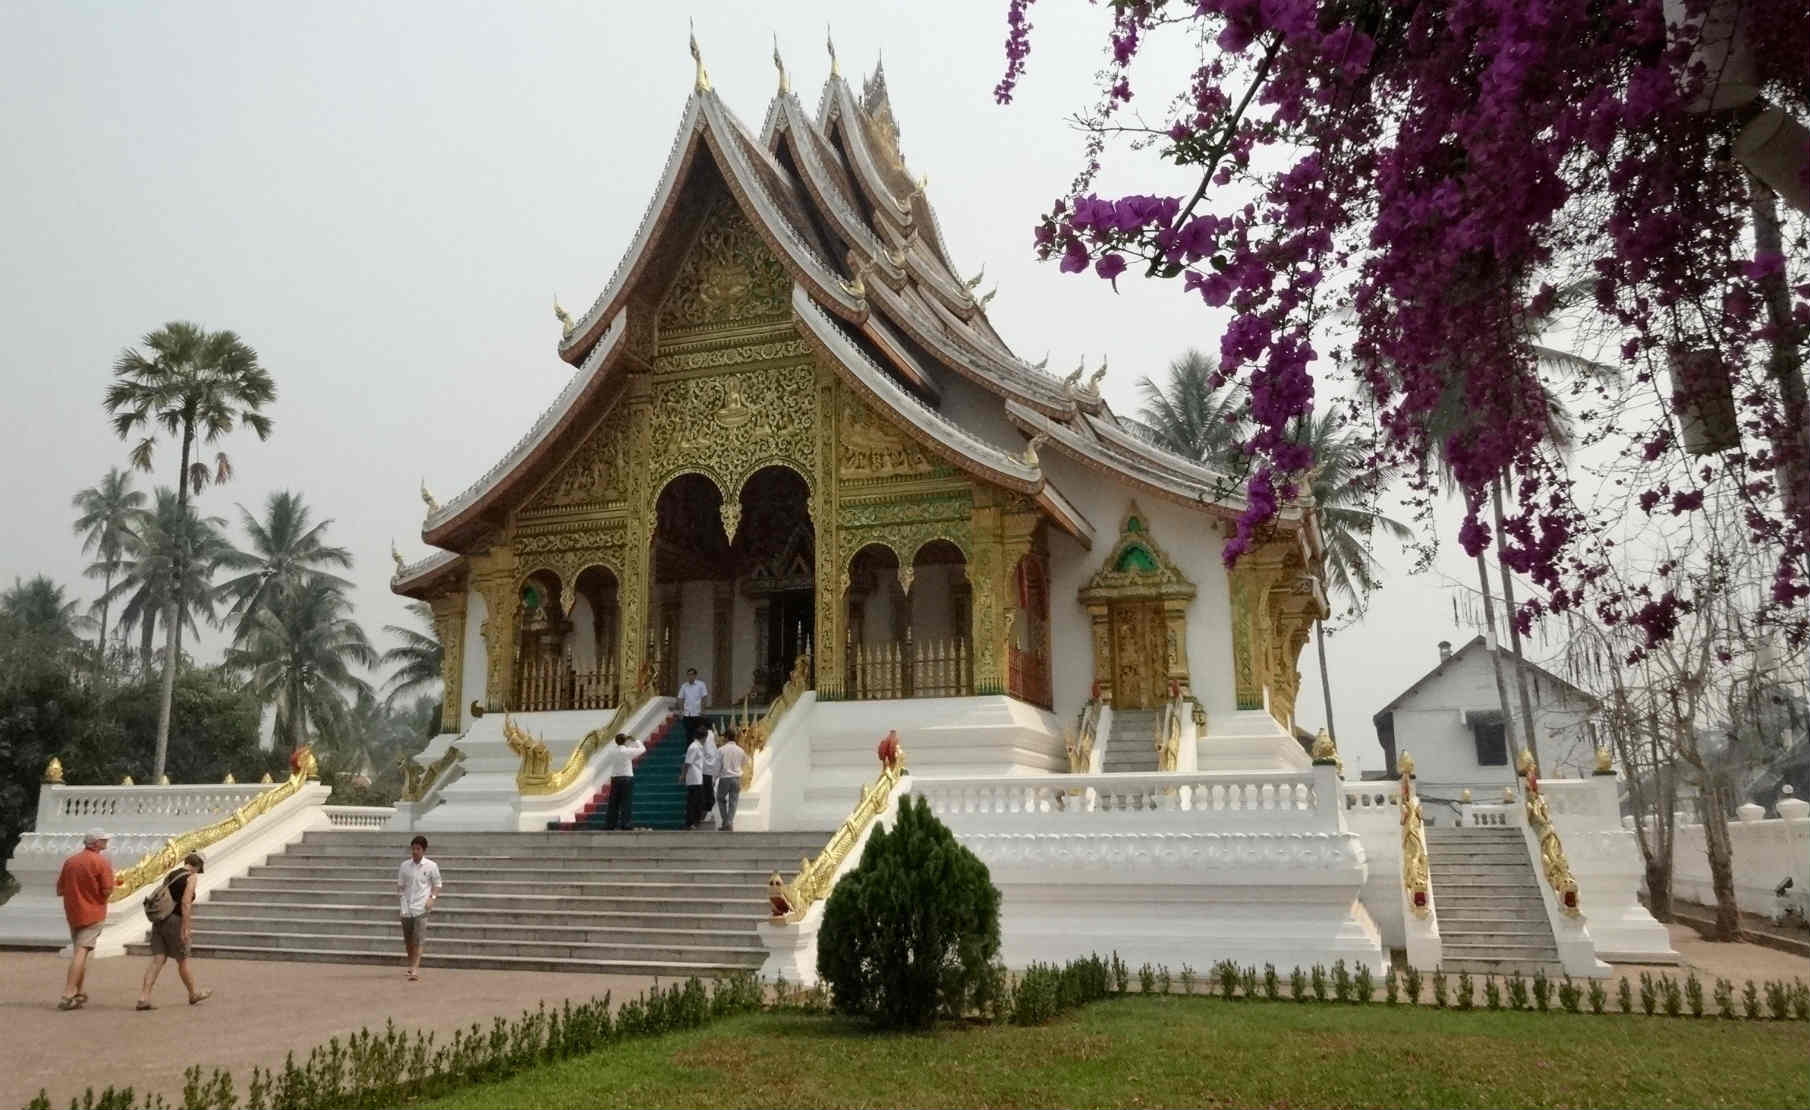 Luang Prabang in Laos buddhist temple